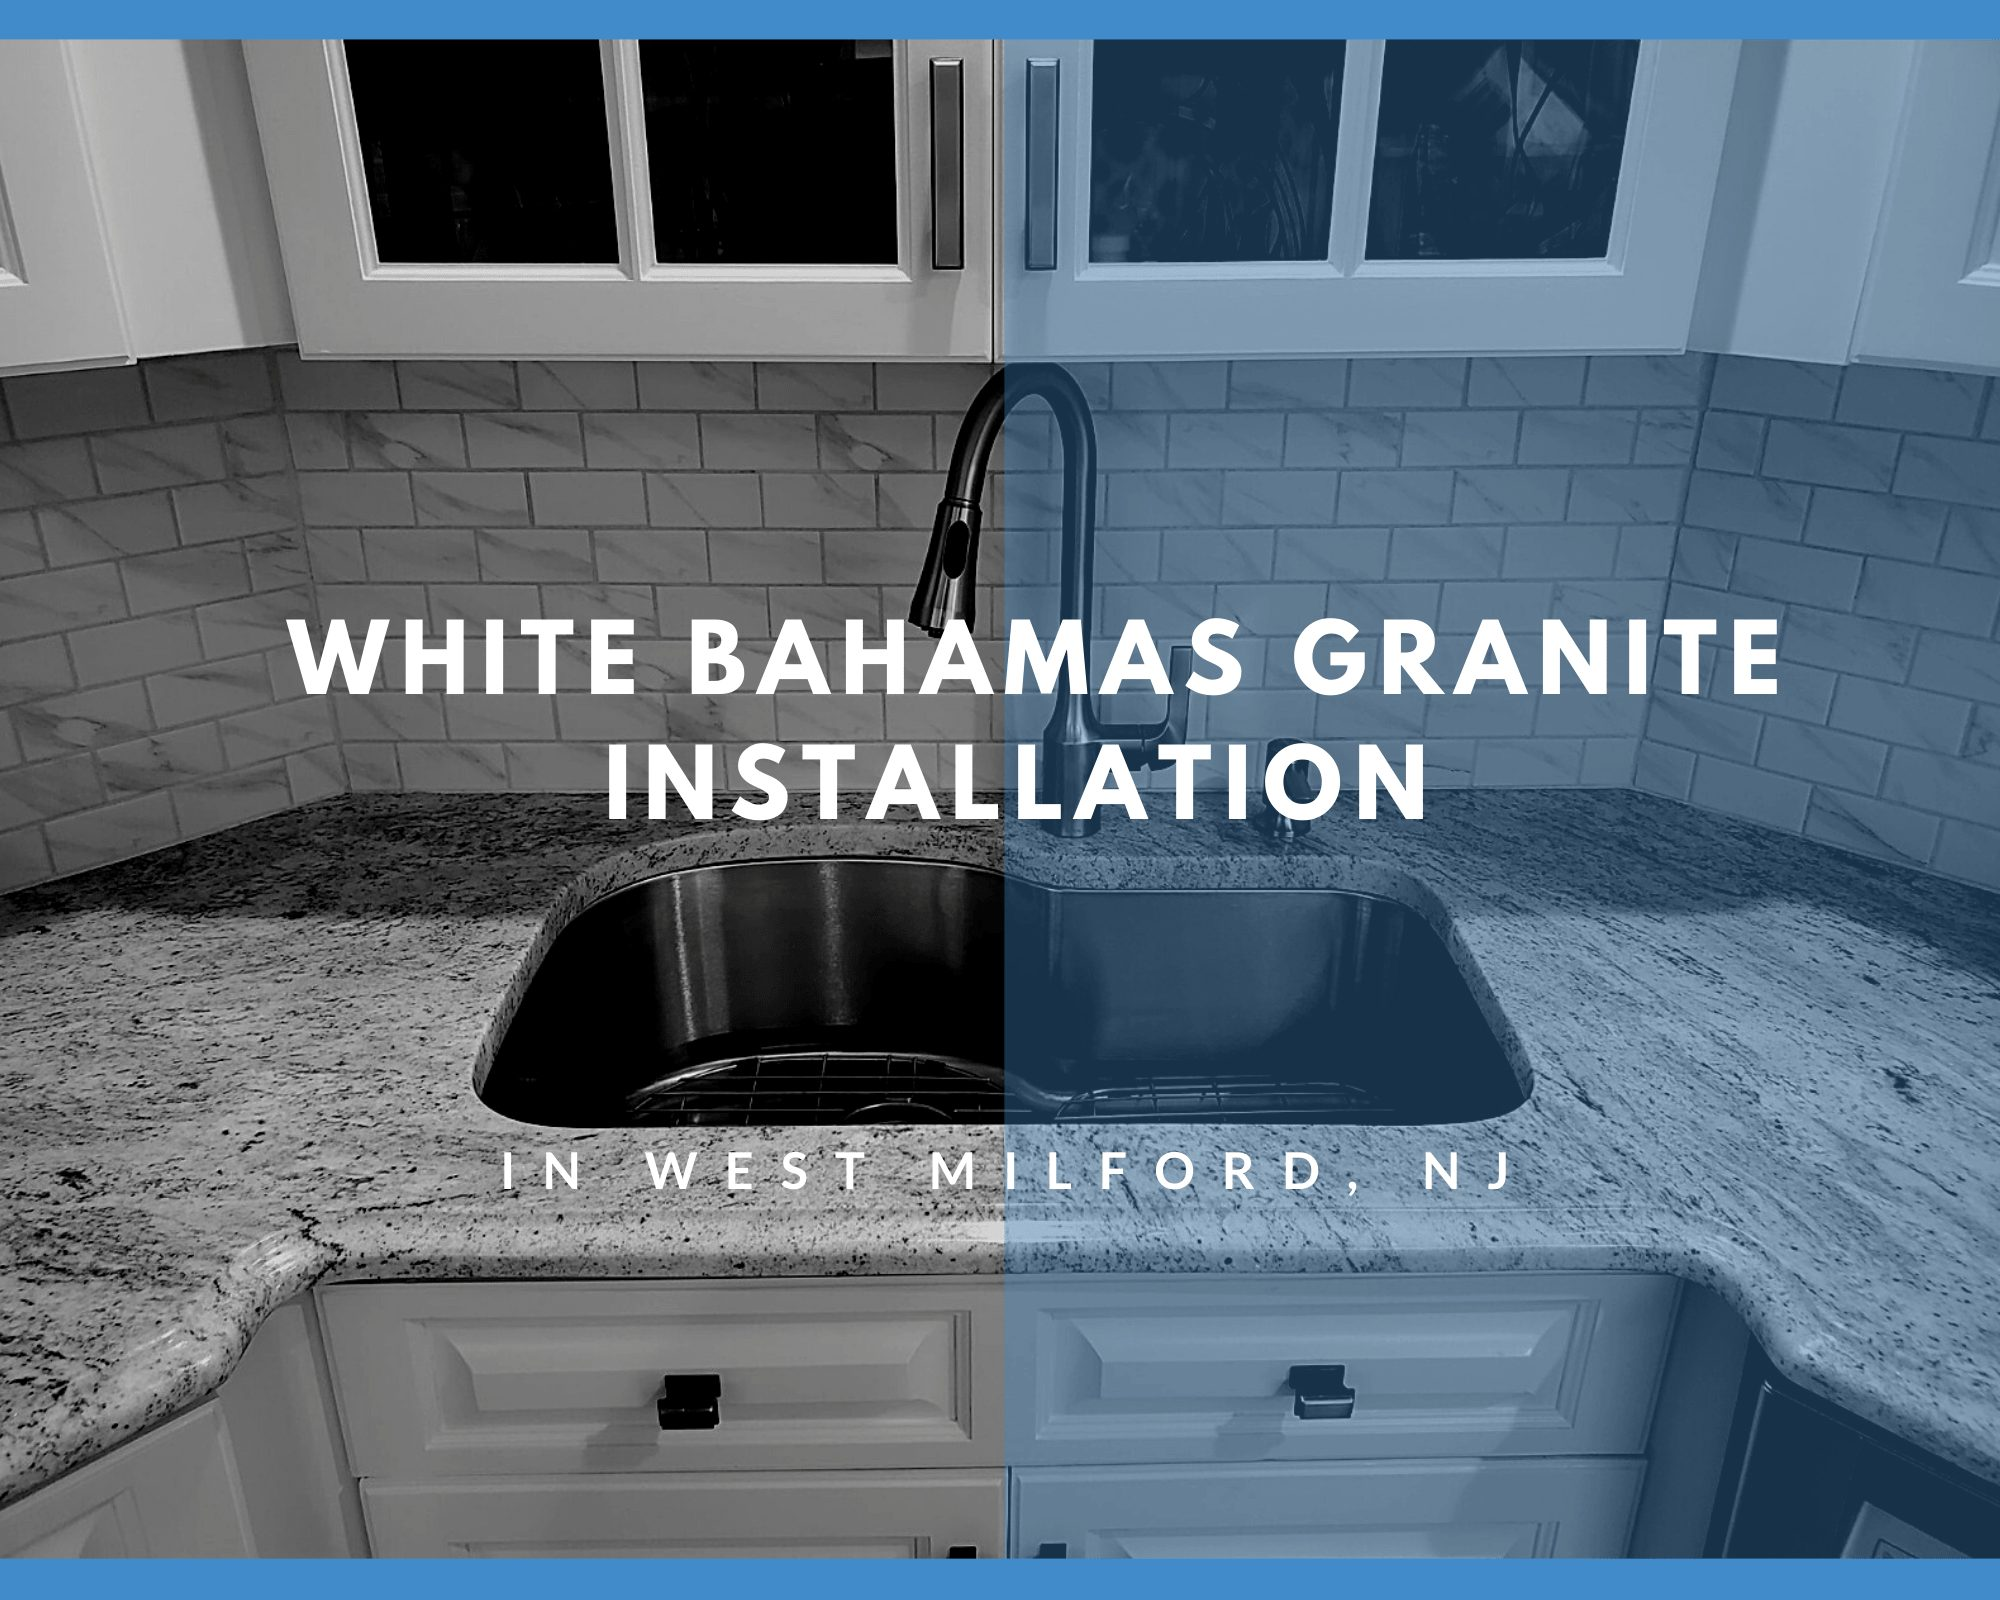 White Bahamas Granite Installation Project in West Milford, NJ